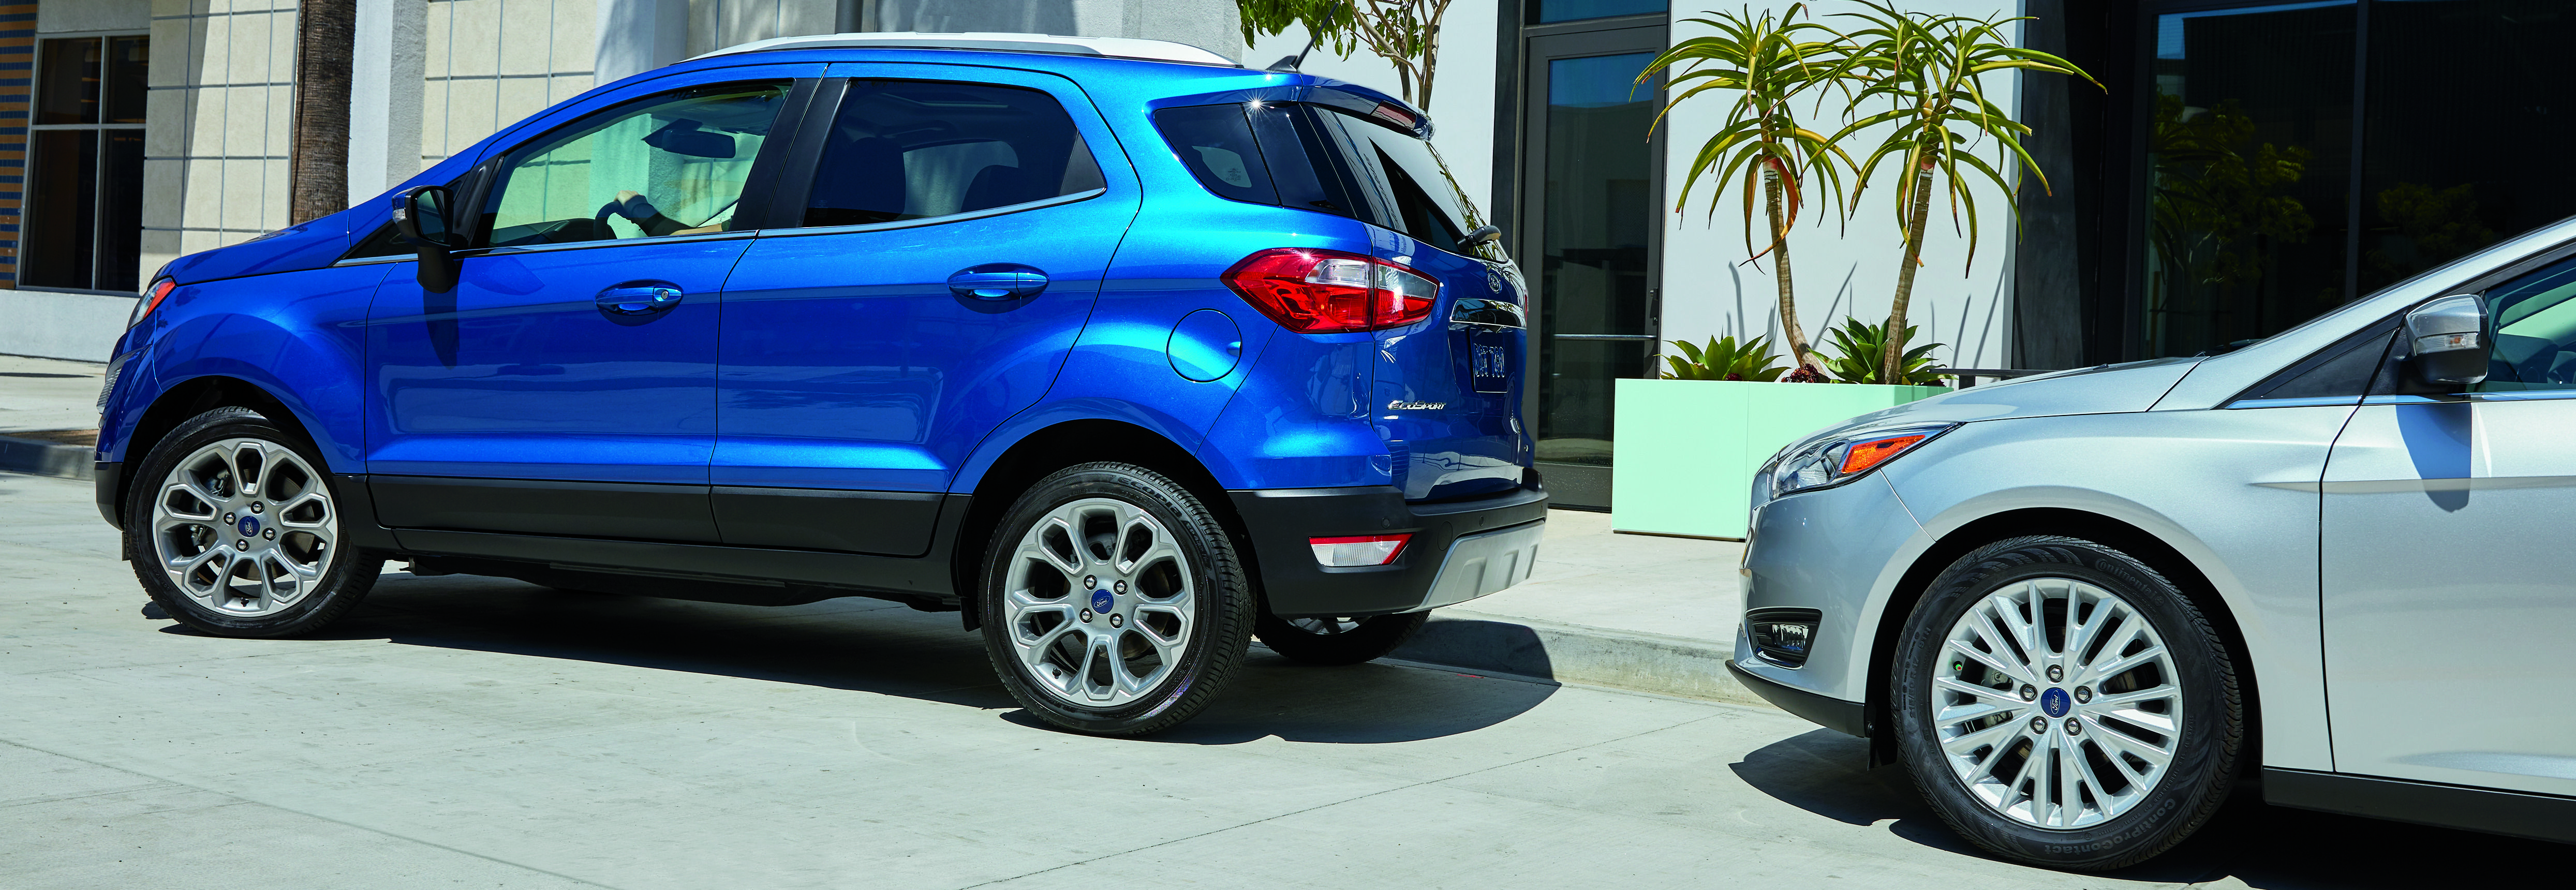 Planet Ford Spring >> Smart Spots For The Ecosport Come Get Yours Today At Planet